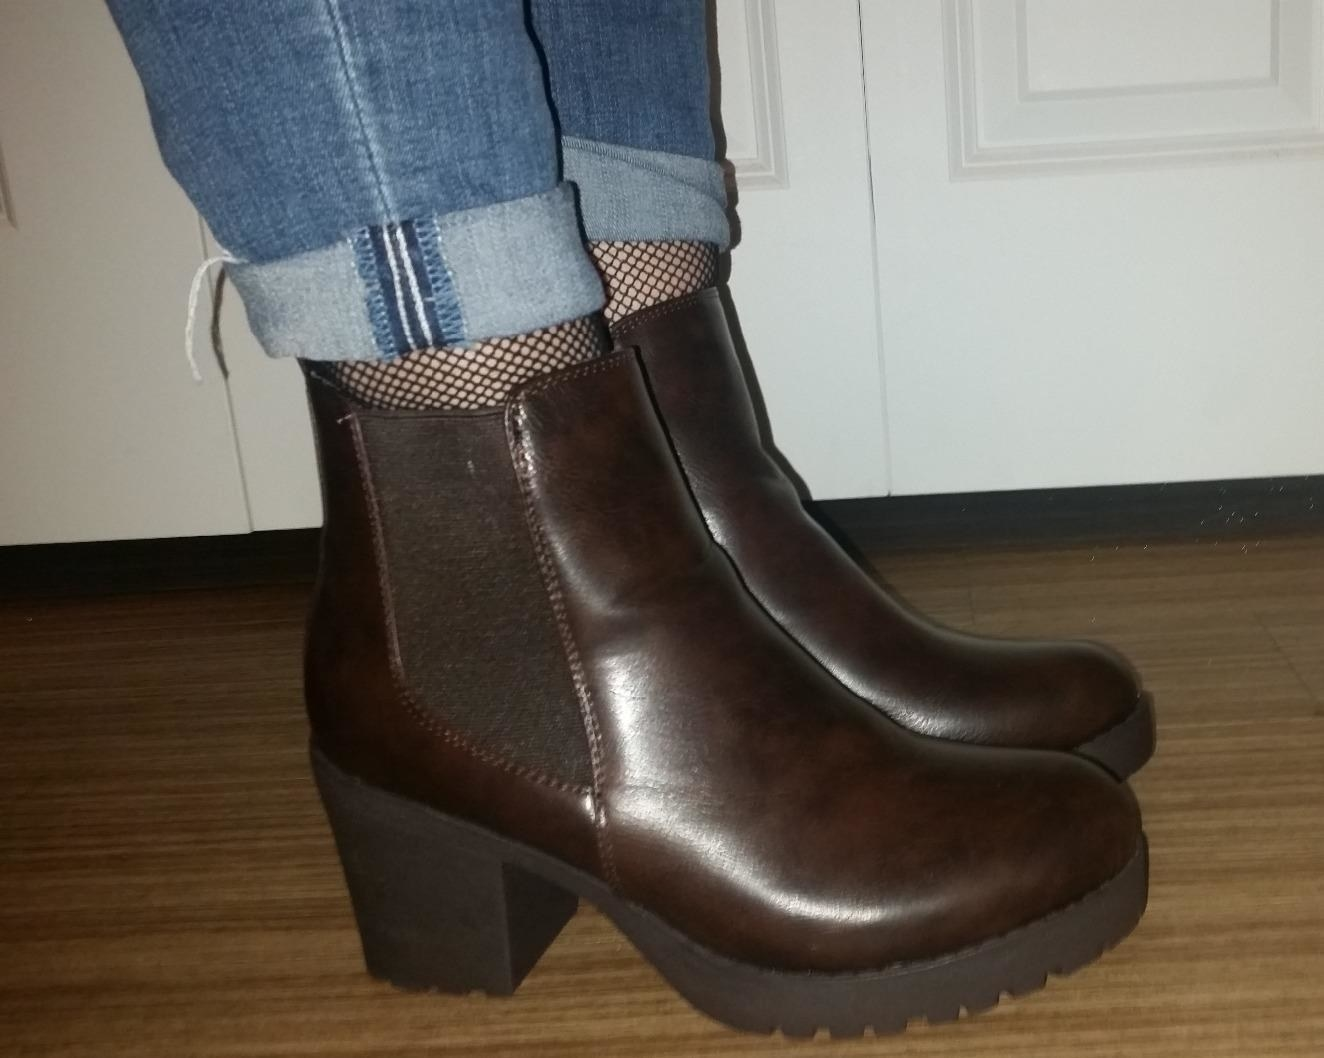 Reviewer wearing the brown boots